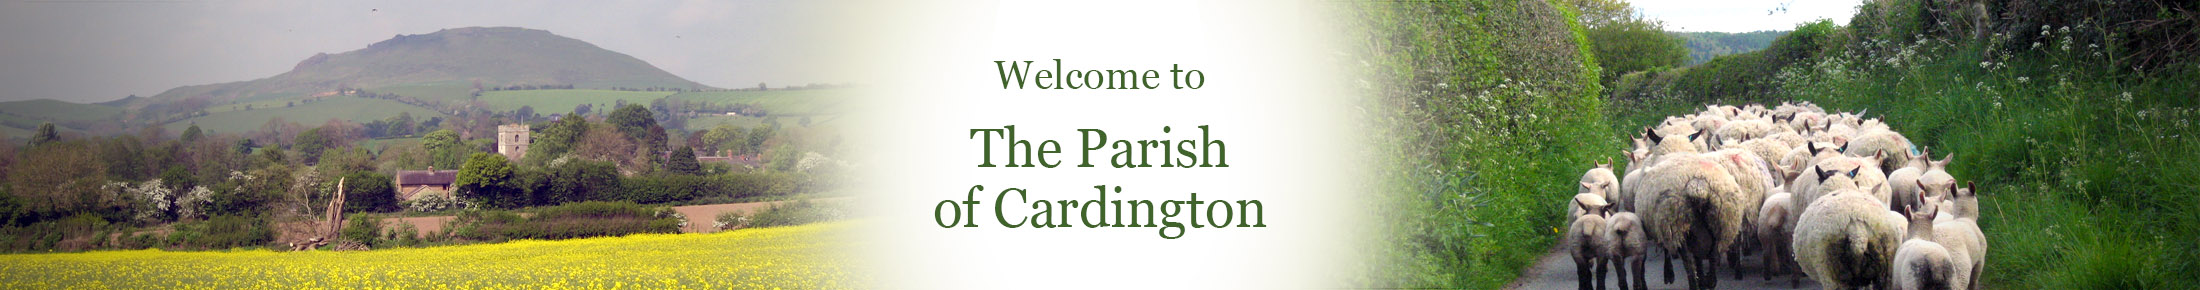 Header Image for Cardington Parish Council